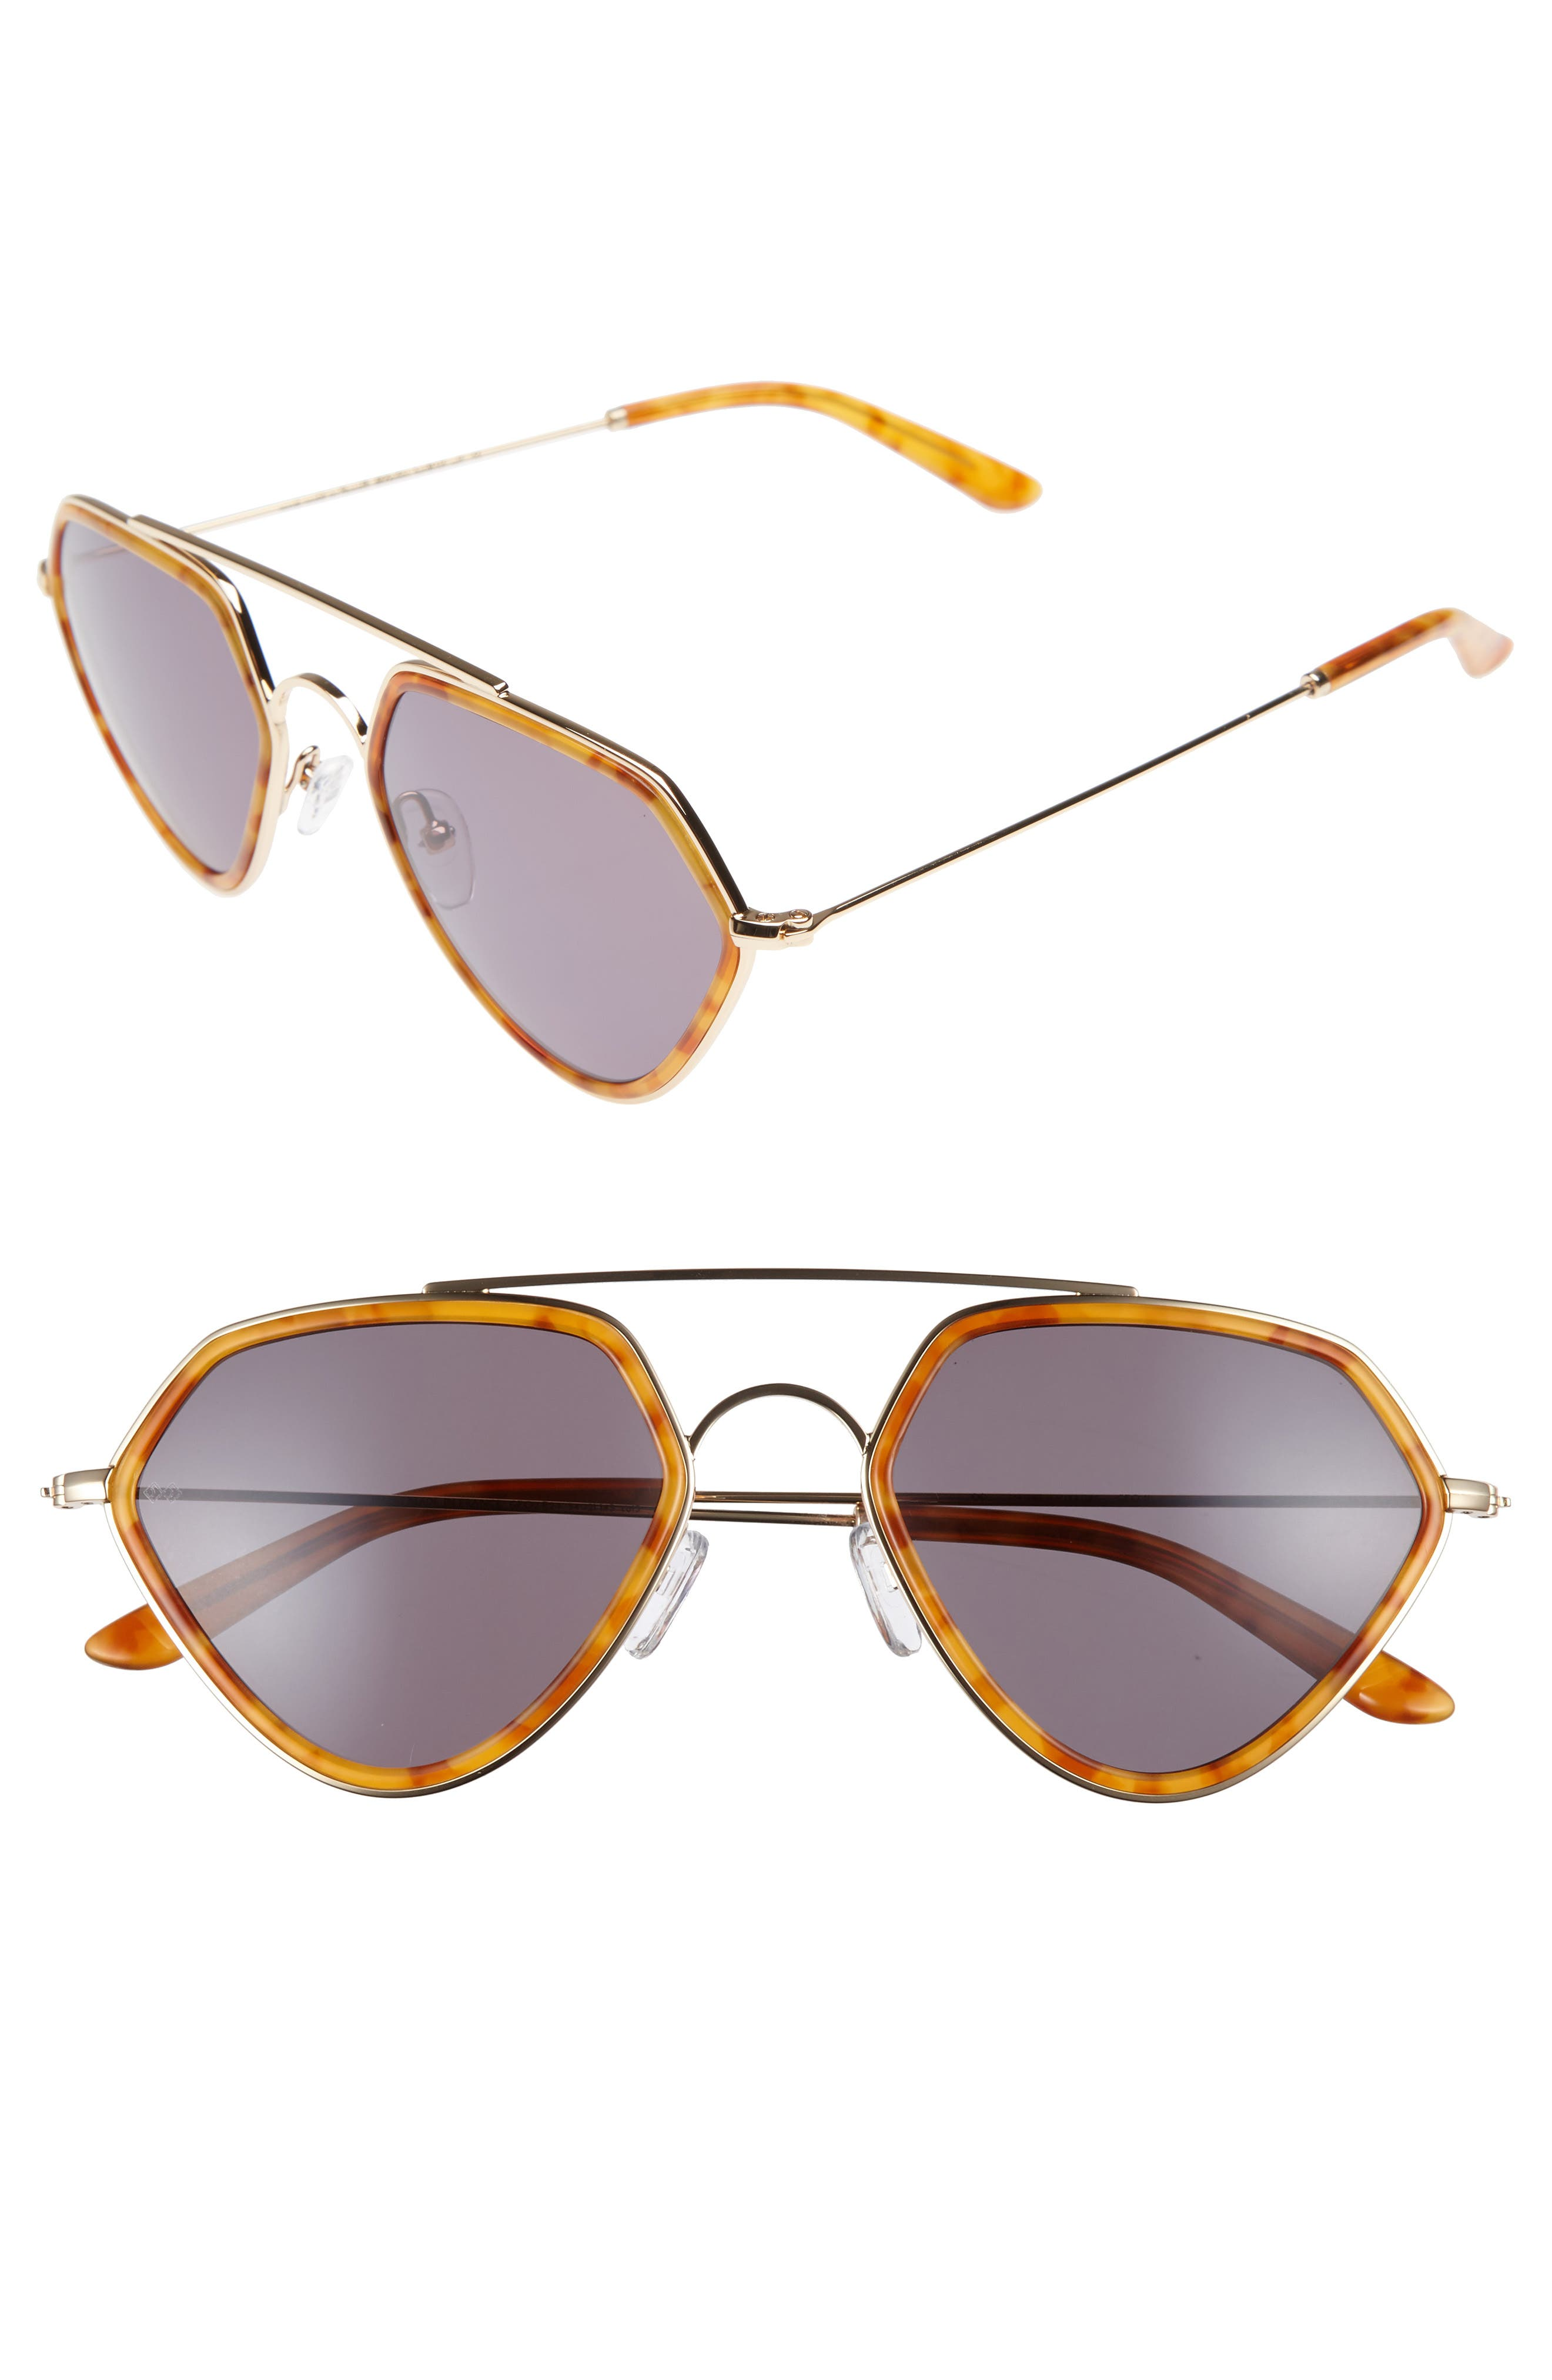 Geo 2 53mm Retro Sunglasses,                             Main thumbnail 1, color,                             Ginger Tortoise/ Green Grey